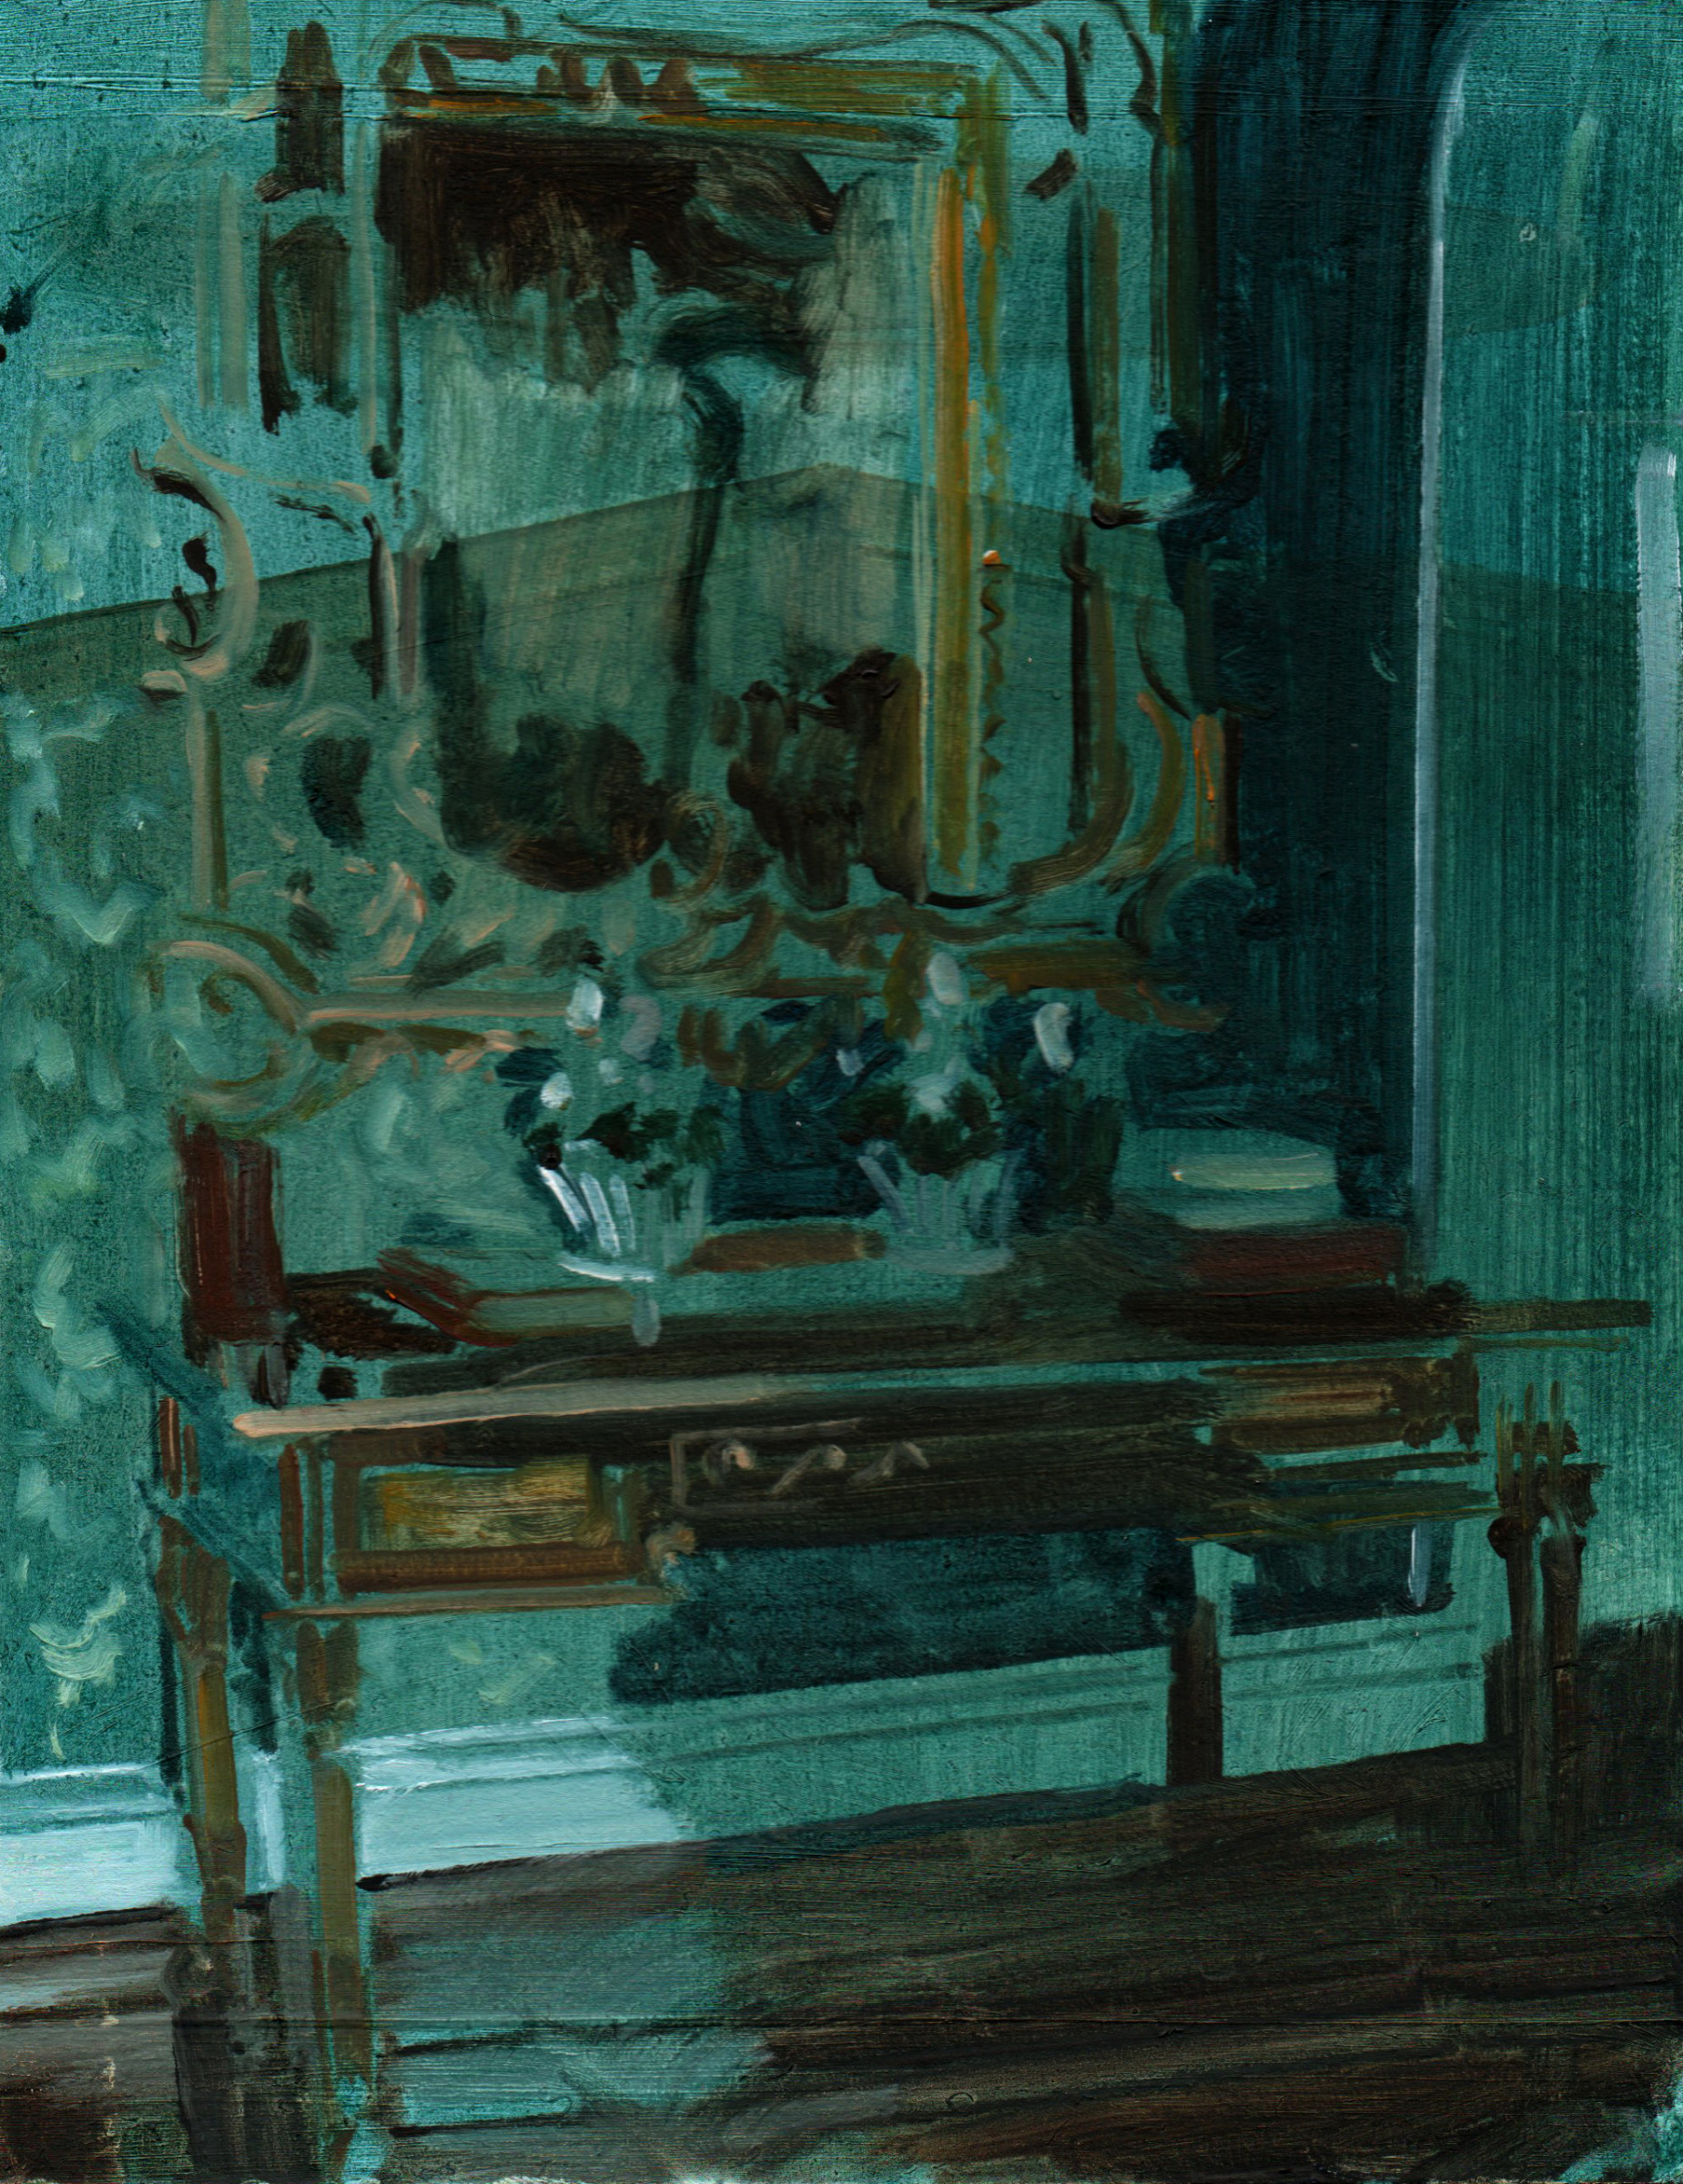 """<span class=""""link fancybox-details-link""""><a href=""""/exhibitions/40/works/artworks2338/"""">View Detail Page</a></span><div class=""""artist""""><strong>Eleanor Watson</strong></div><div class=""""title""""><em>Mirror in the Shade</em>, 2018</div><div class=""""medium"""">Oil on Board</div><div class=""""dimensions"""">22 x 17 cm<br>8 5/8 x 6 3/4 in.</div>"""